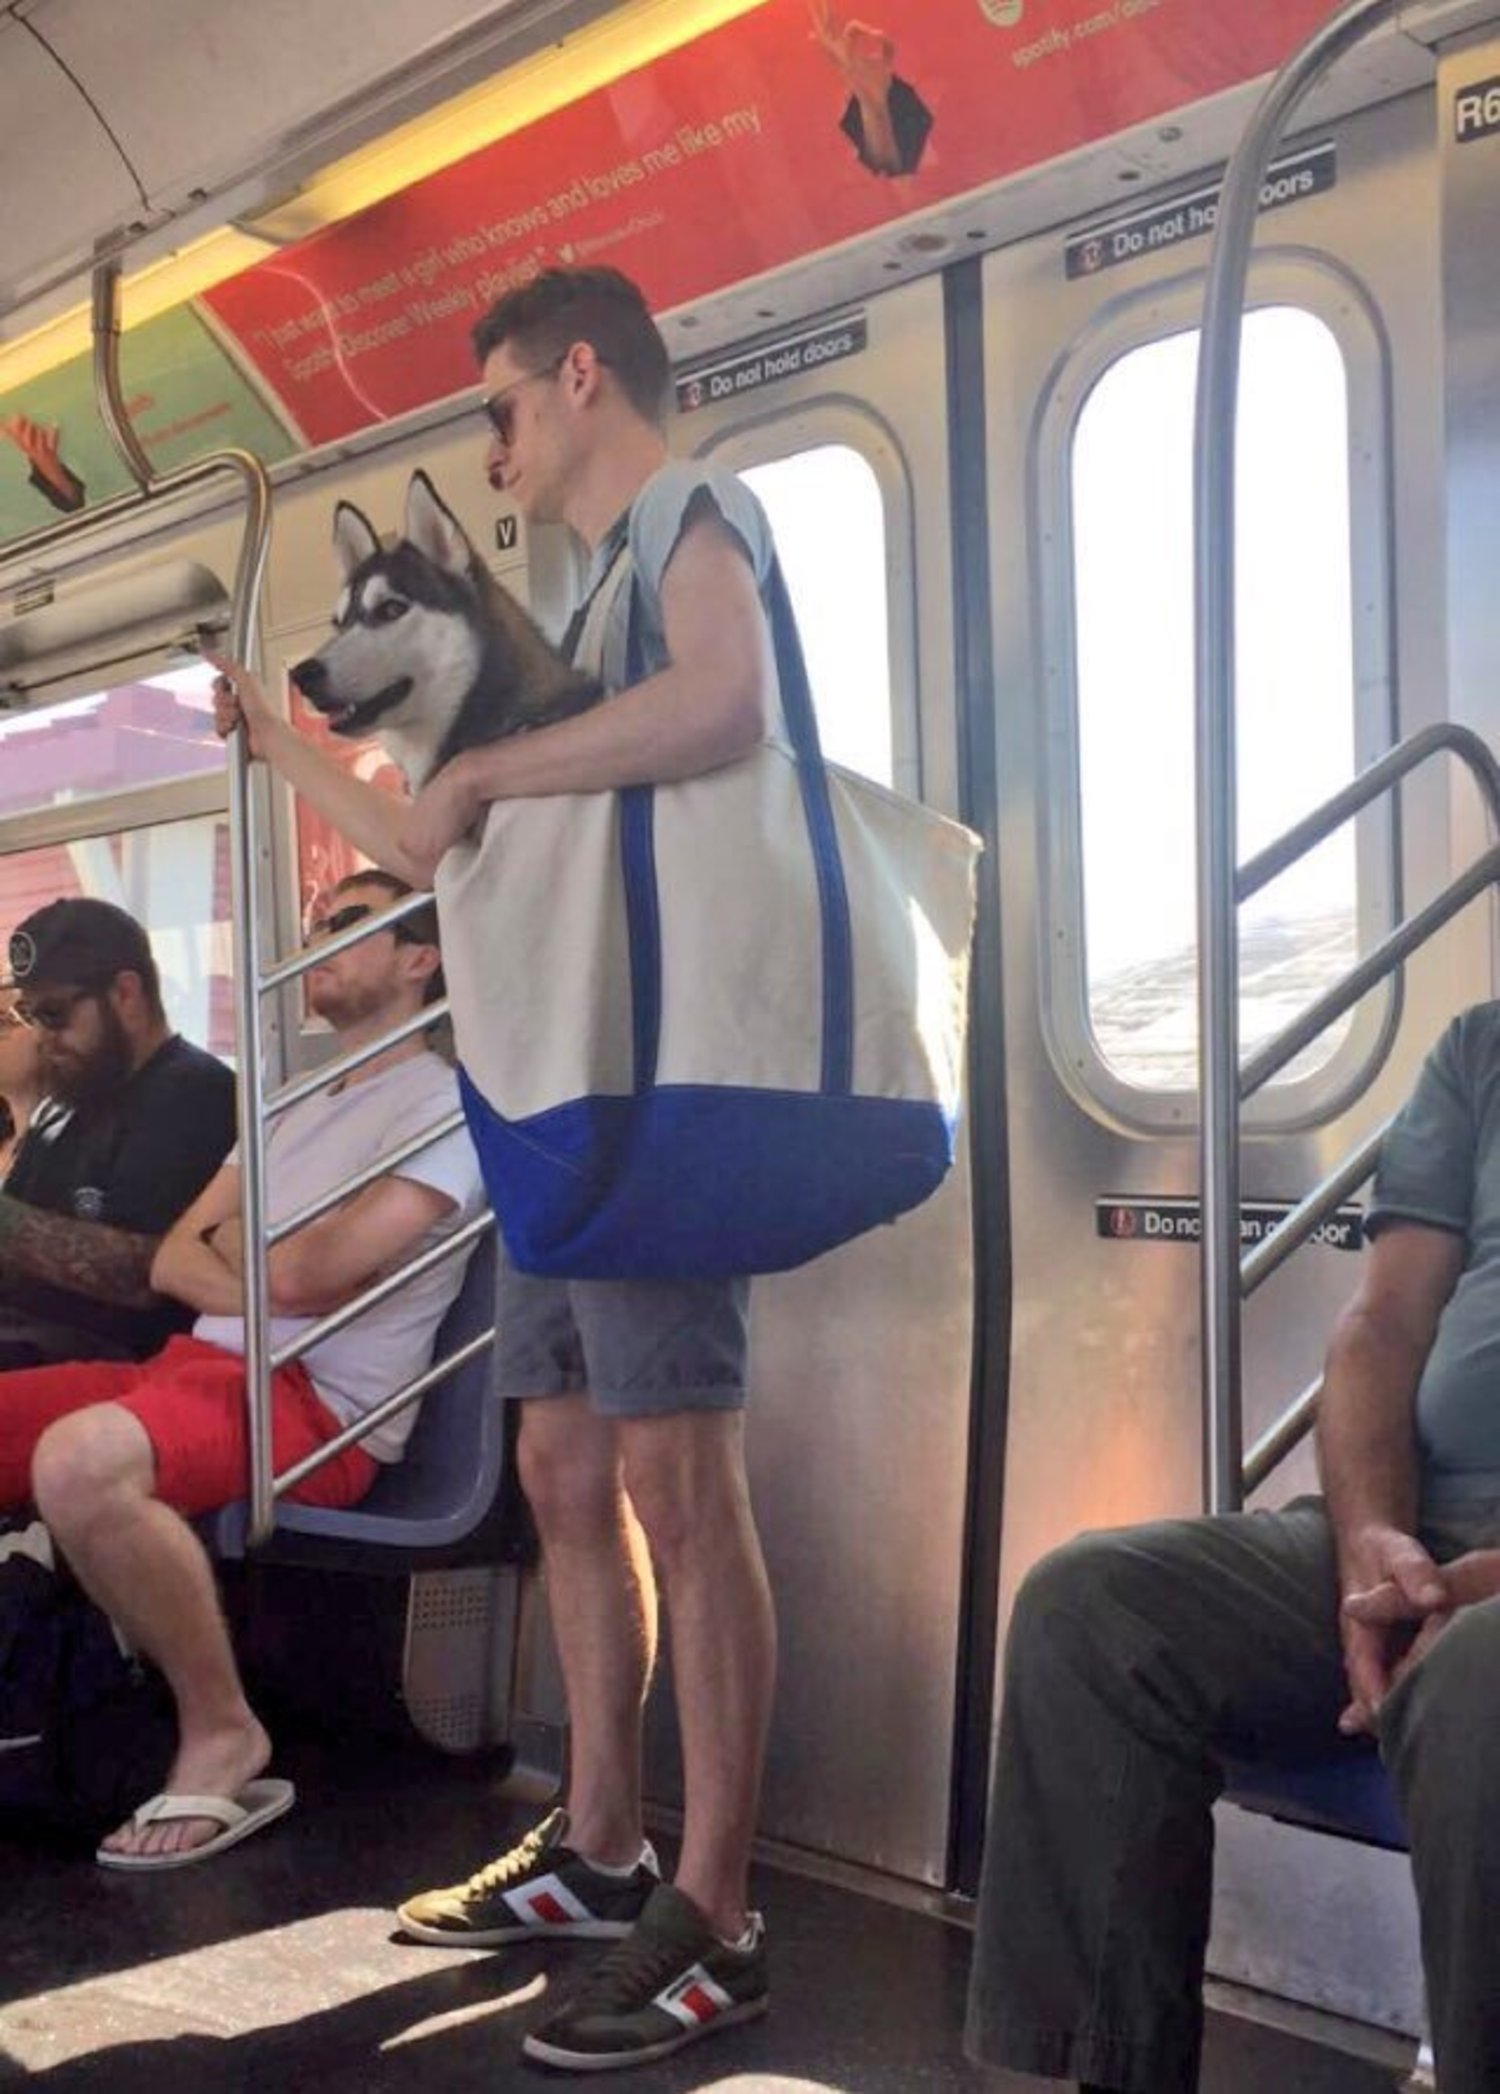 Only in New York a person would put a huge dog in a bag on the subway cc: @Gothamist https://t.co/0TpvPl37EA